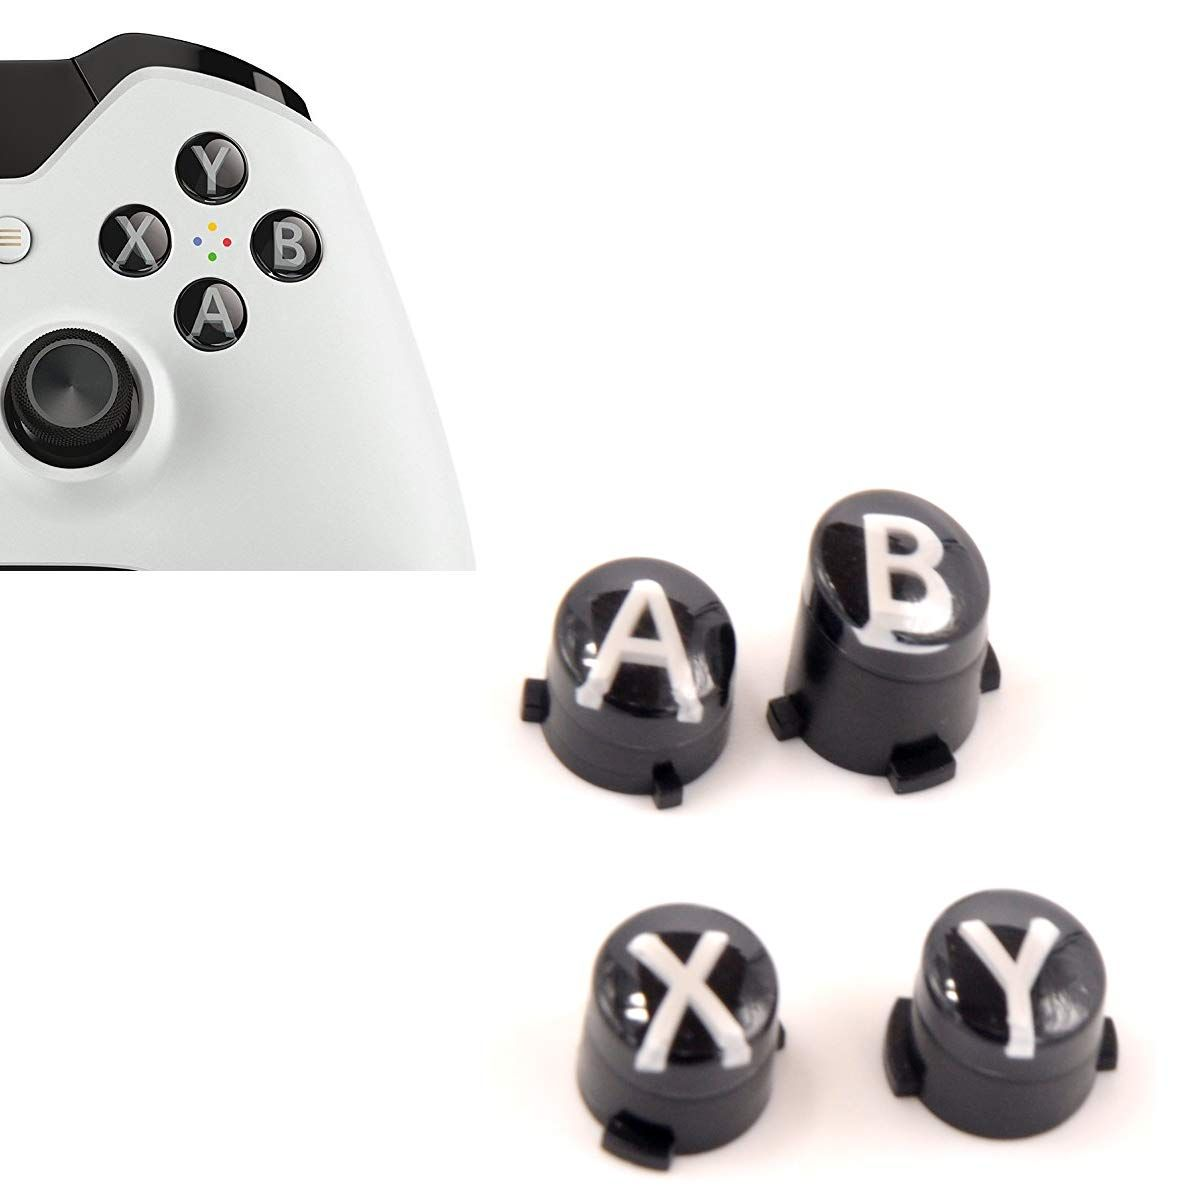 Ctrldepot Abxy Buttons Letters Menu Bullet Button Mod Set For Xbox One S X Elite Controller Replacement Parts Lunar Wh Bullet Button Xbox One S Button Letters